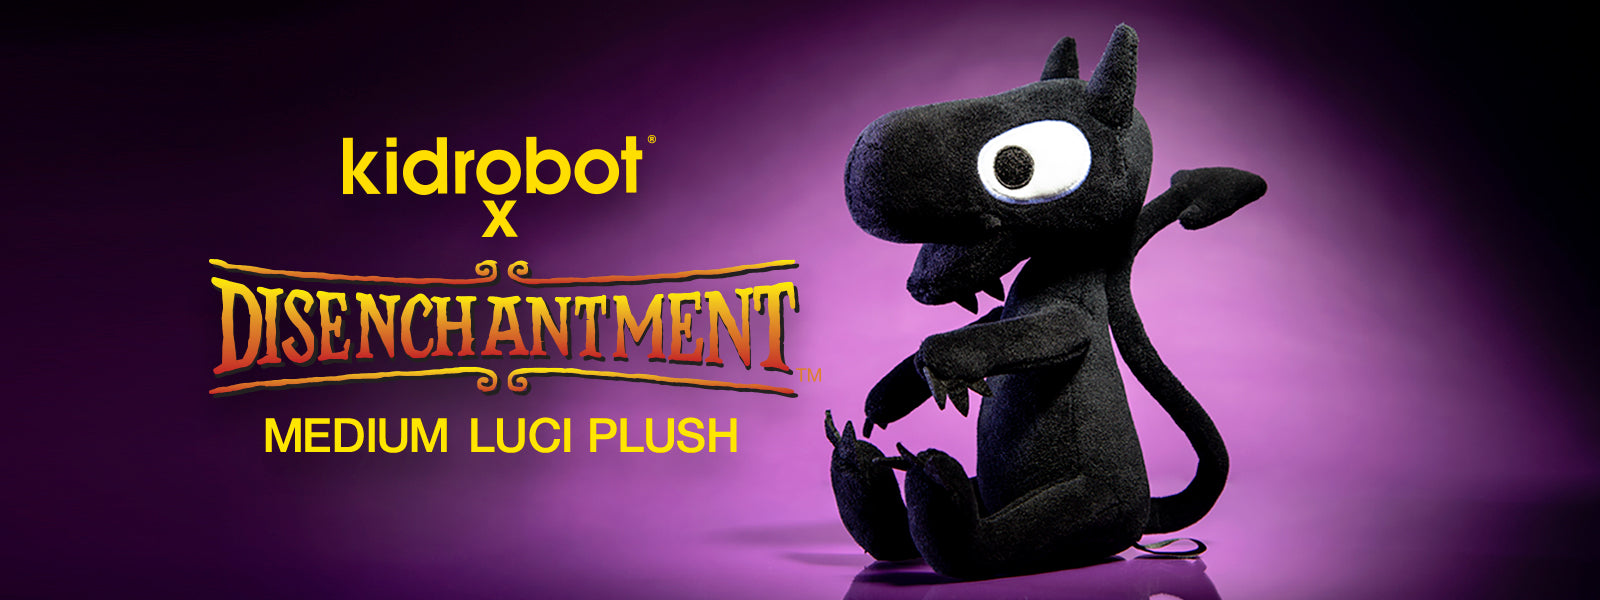 Disenchantment Luci Plush Stuffed Animal by Kidrobot